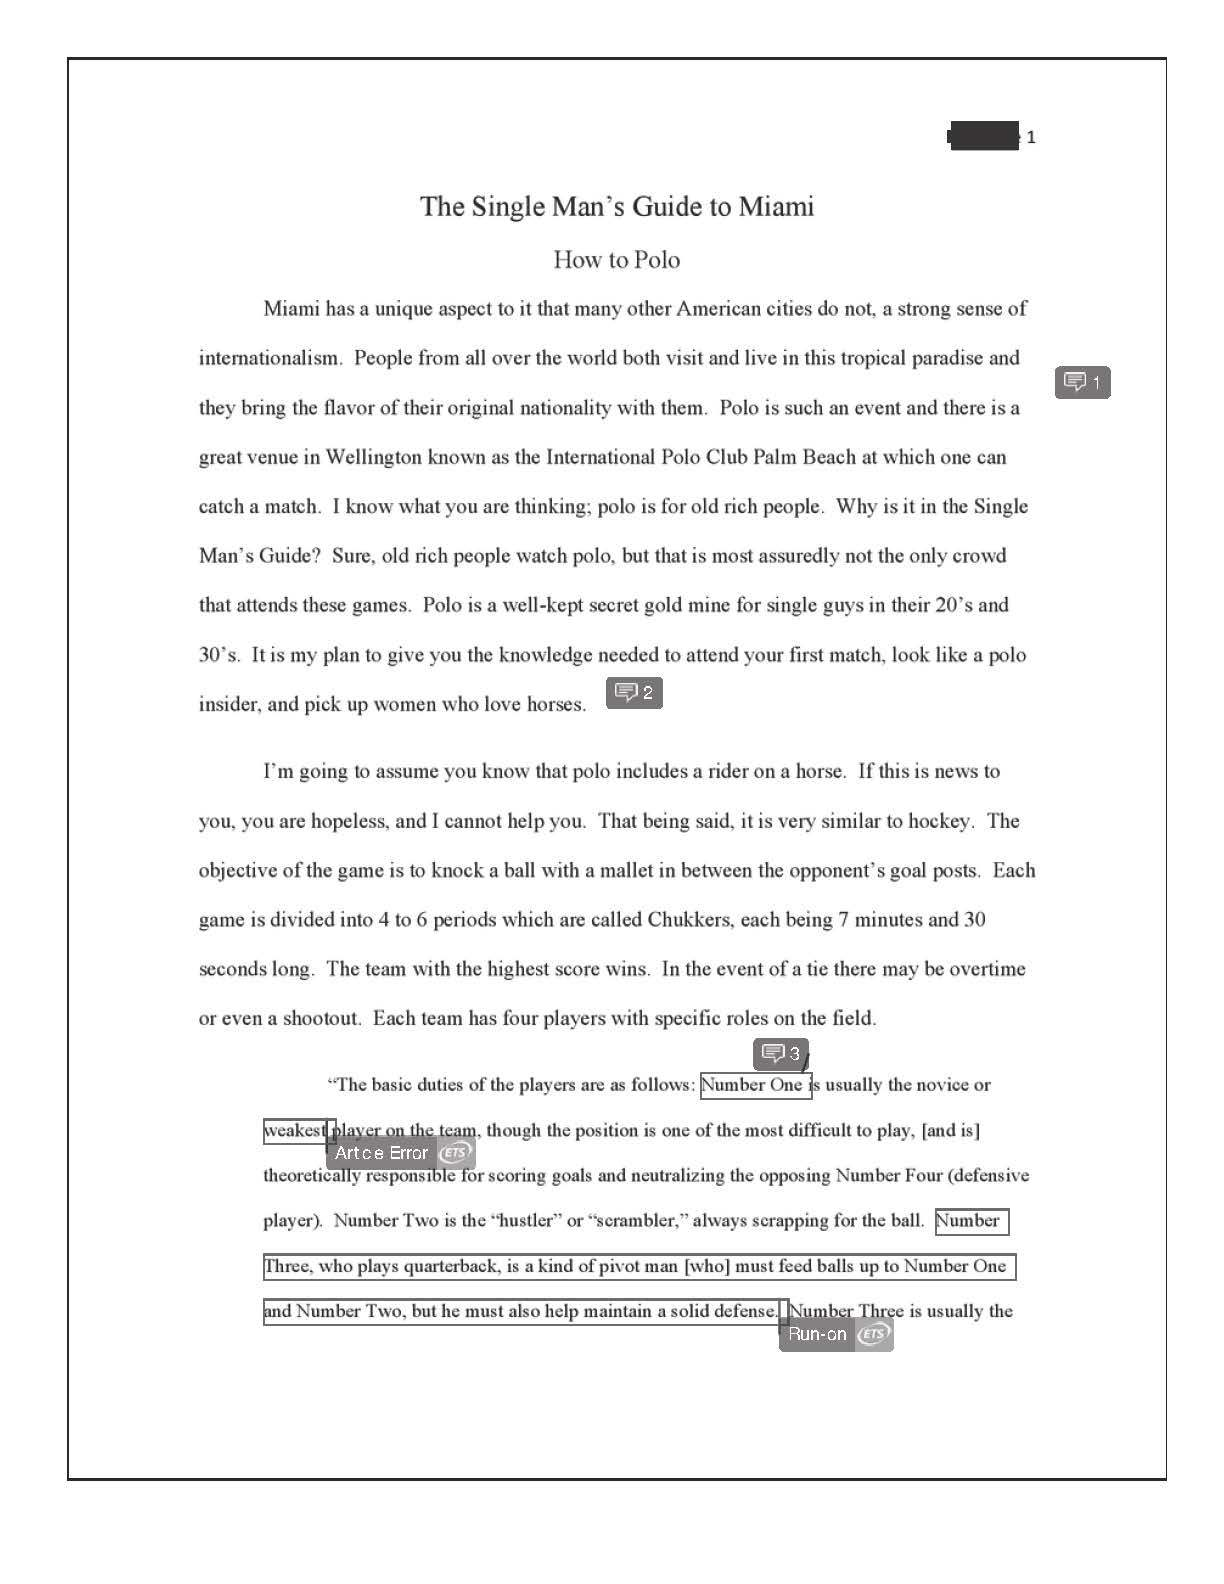 007 Example Of An Essay About Education Examplesative Essays Writing Utopia Instructionative Final How To Polo Redacted P Quiz Prewriting Quizlet Write Incredible Informative Conclusion Ppt 4th Grade Full